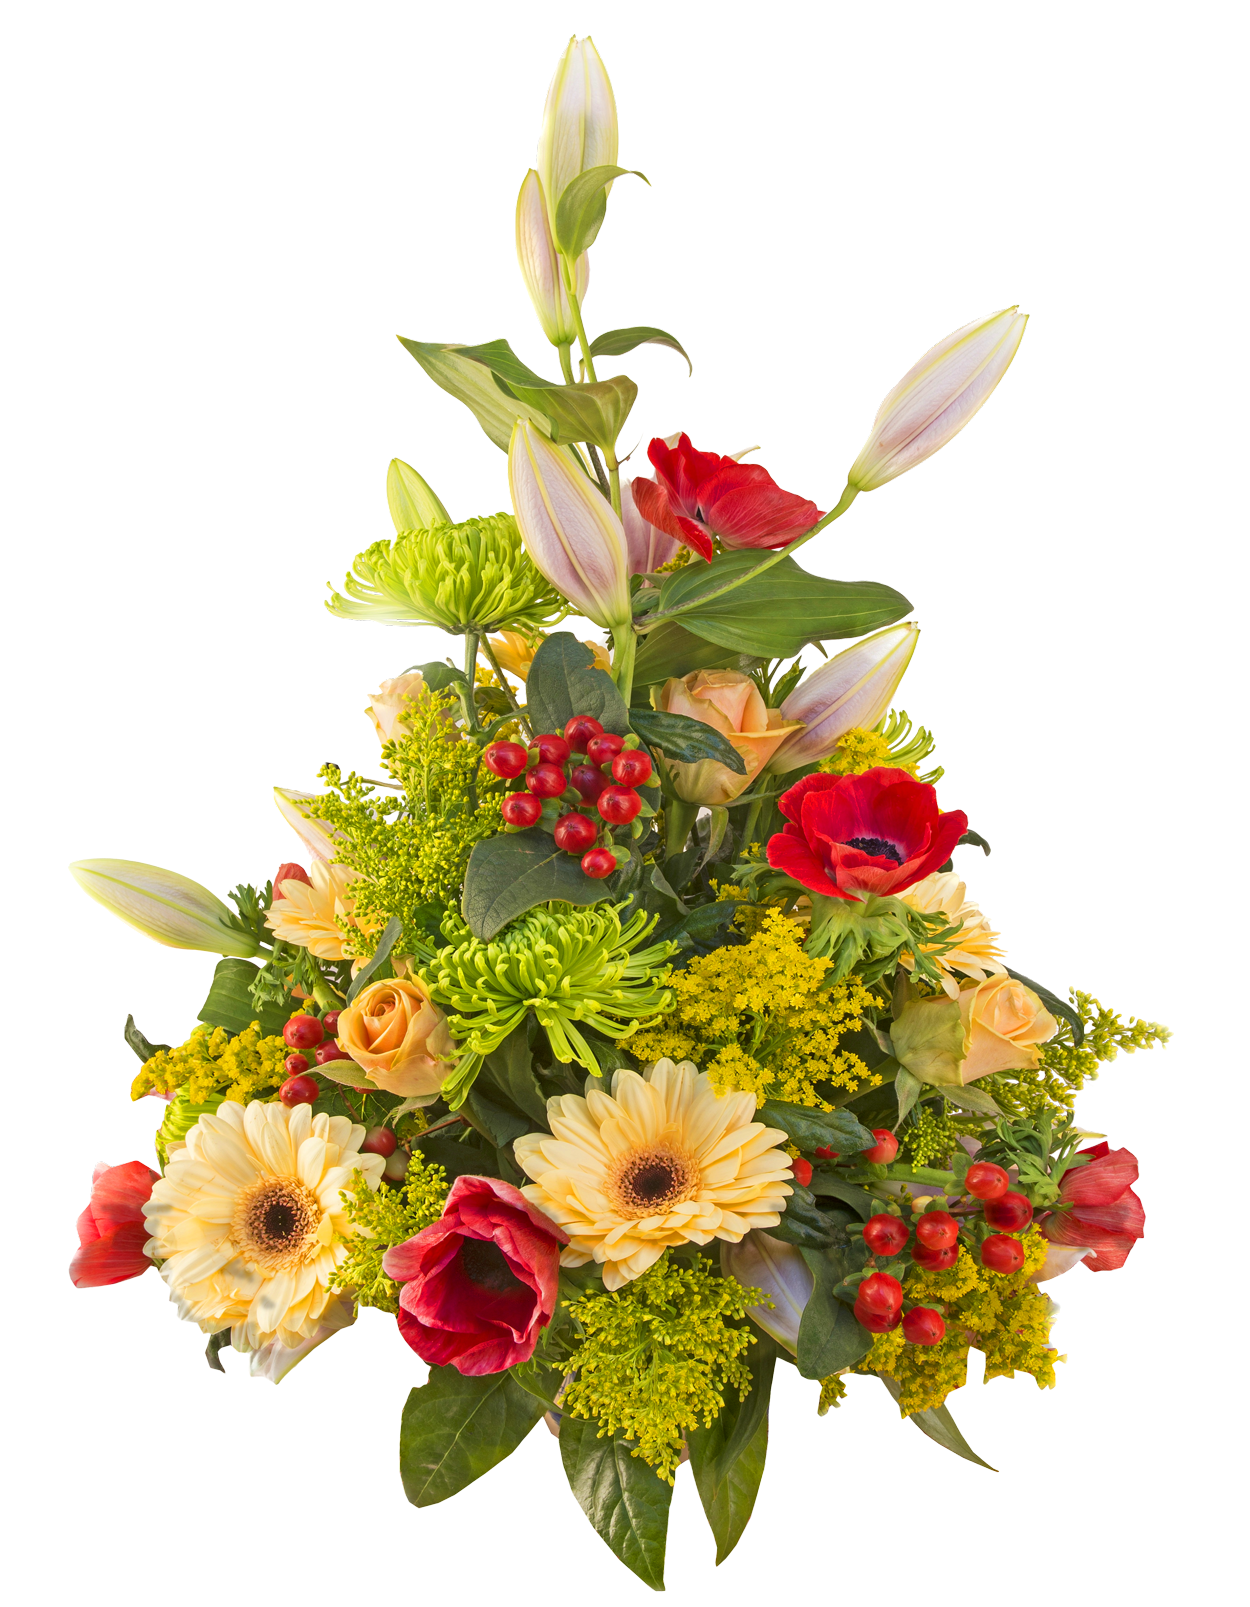 Bouquet Of Roses PNG HD Transparent Bouquet Of Roses HD